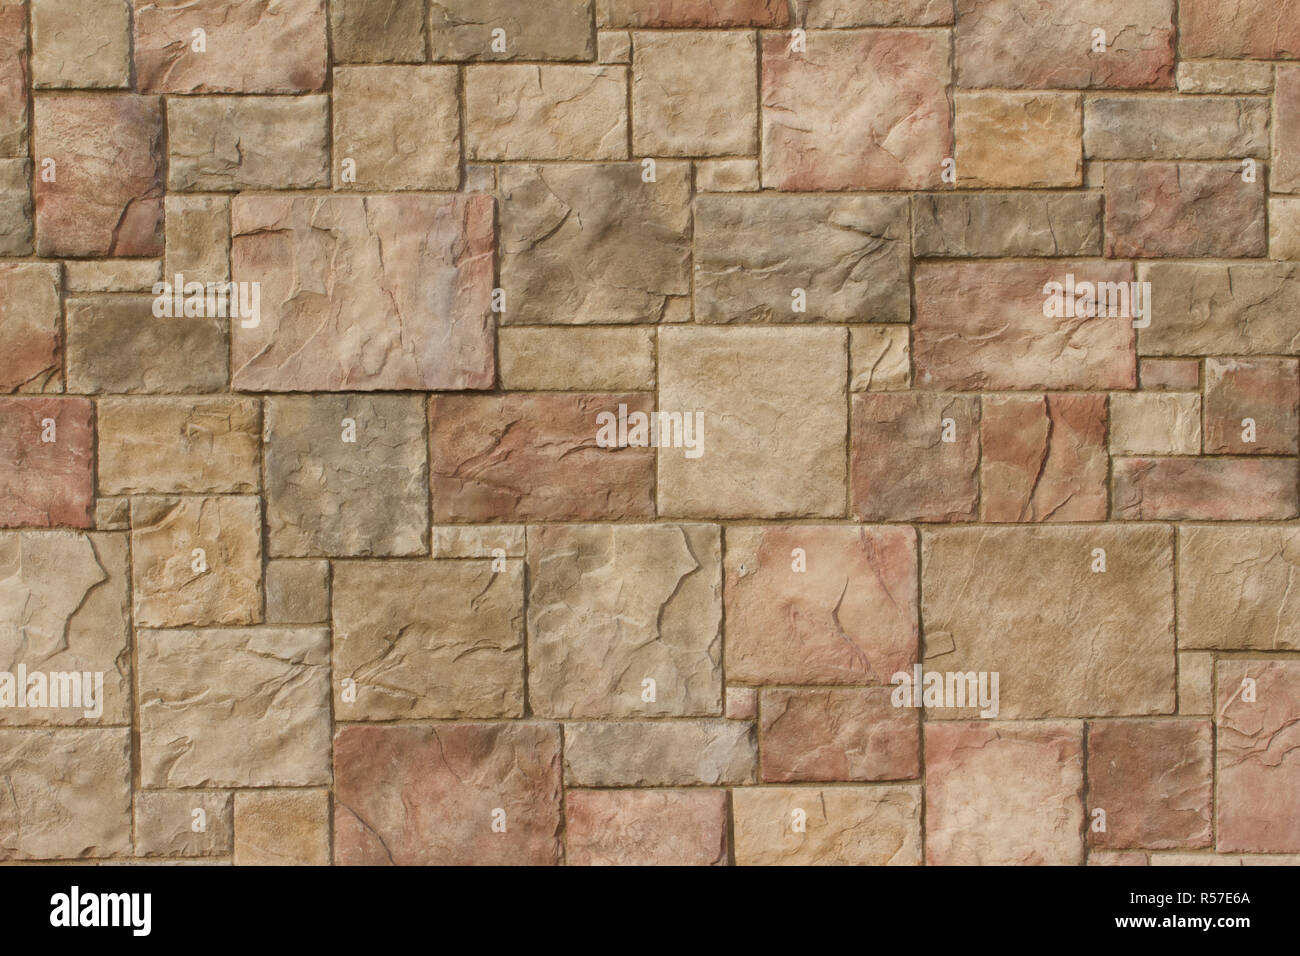 Textured marble look stone brick wall background in shades of beige, red and light brown - Stock Image